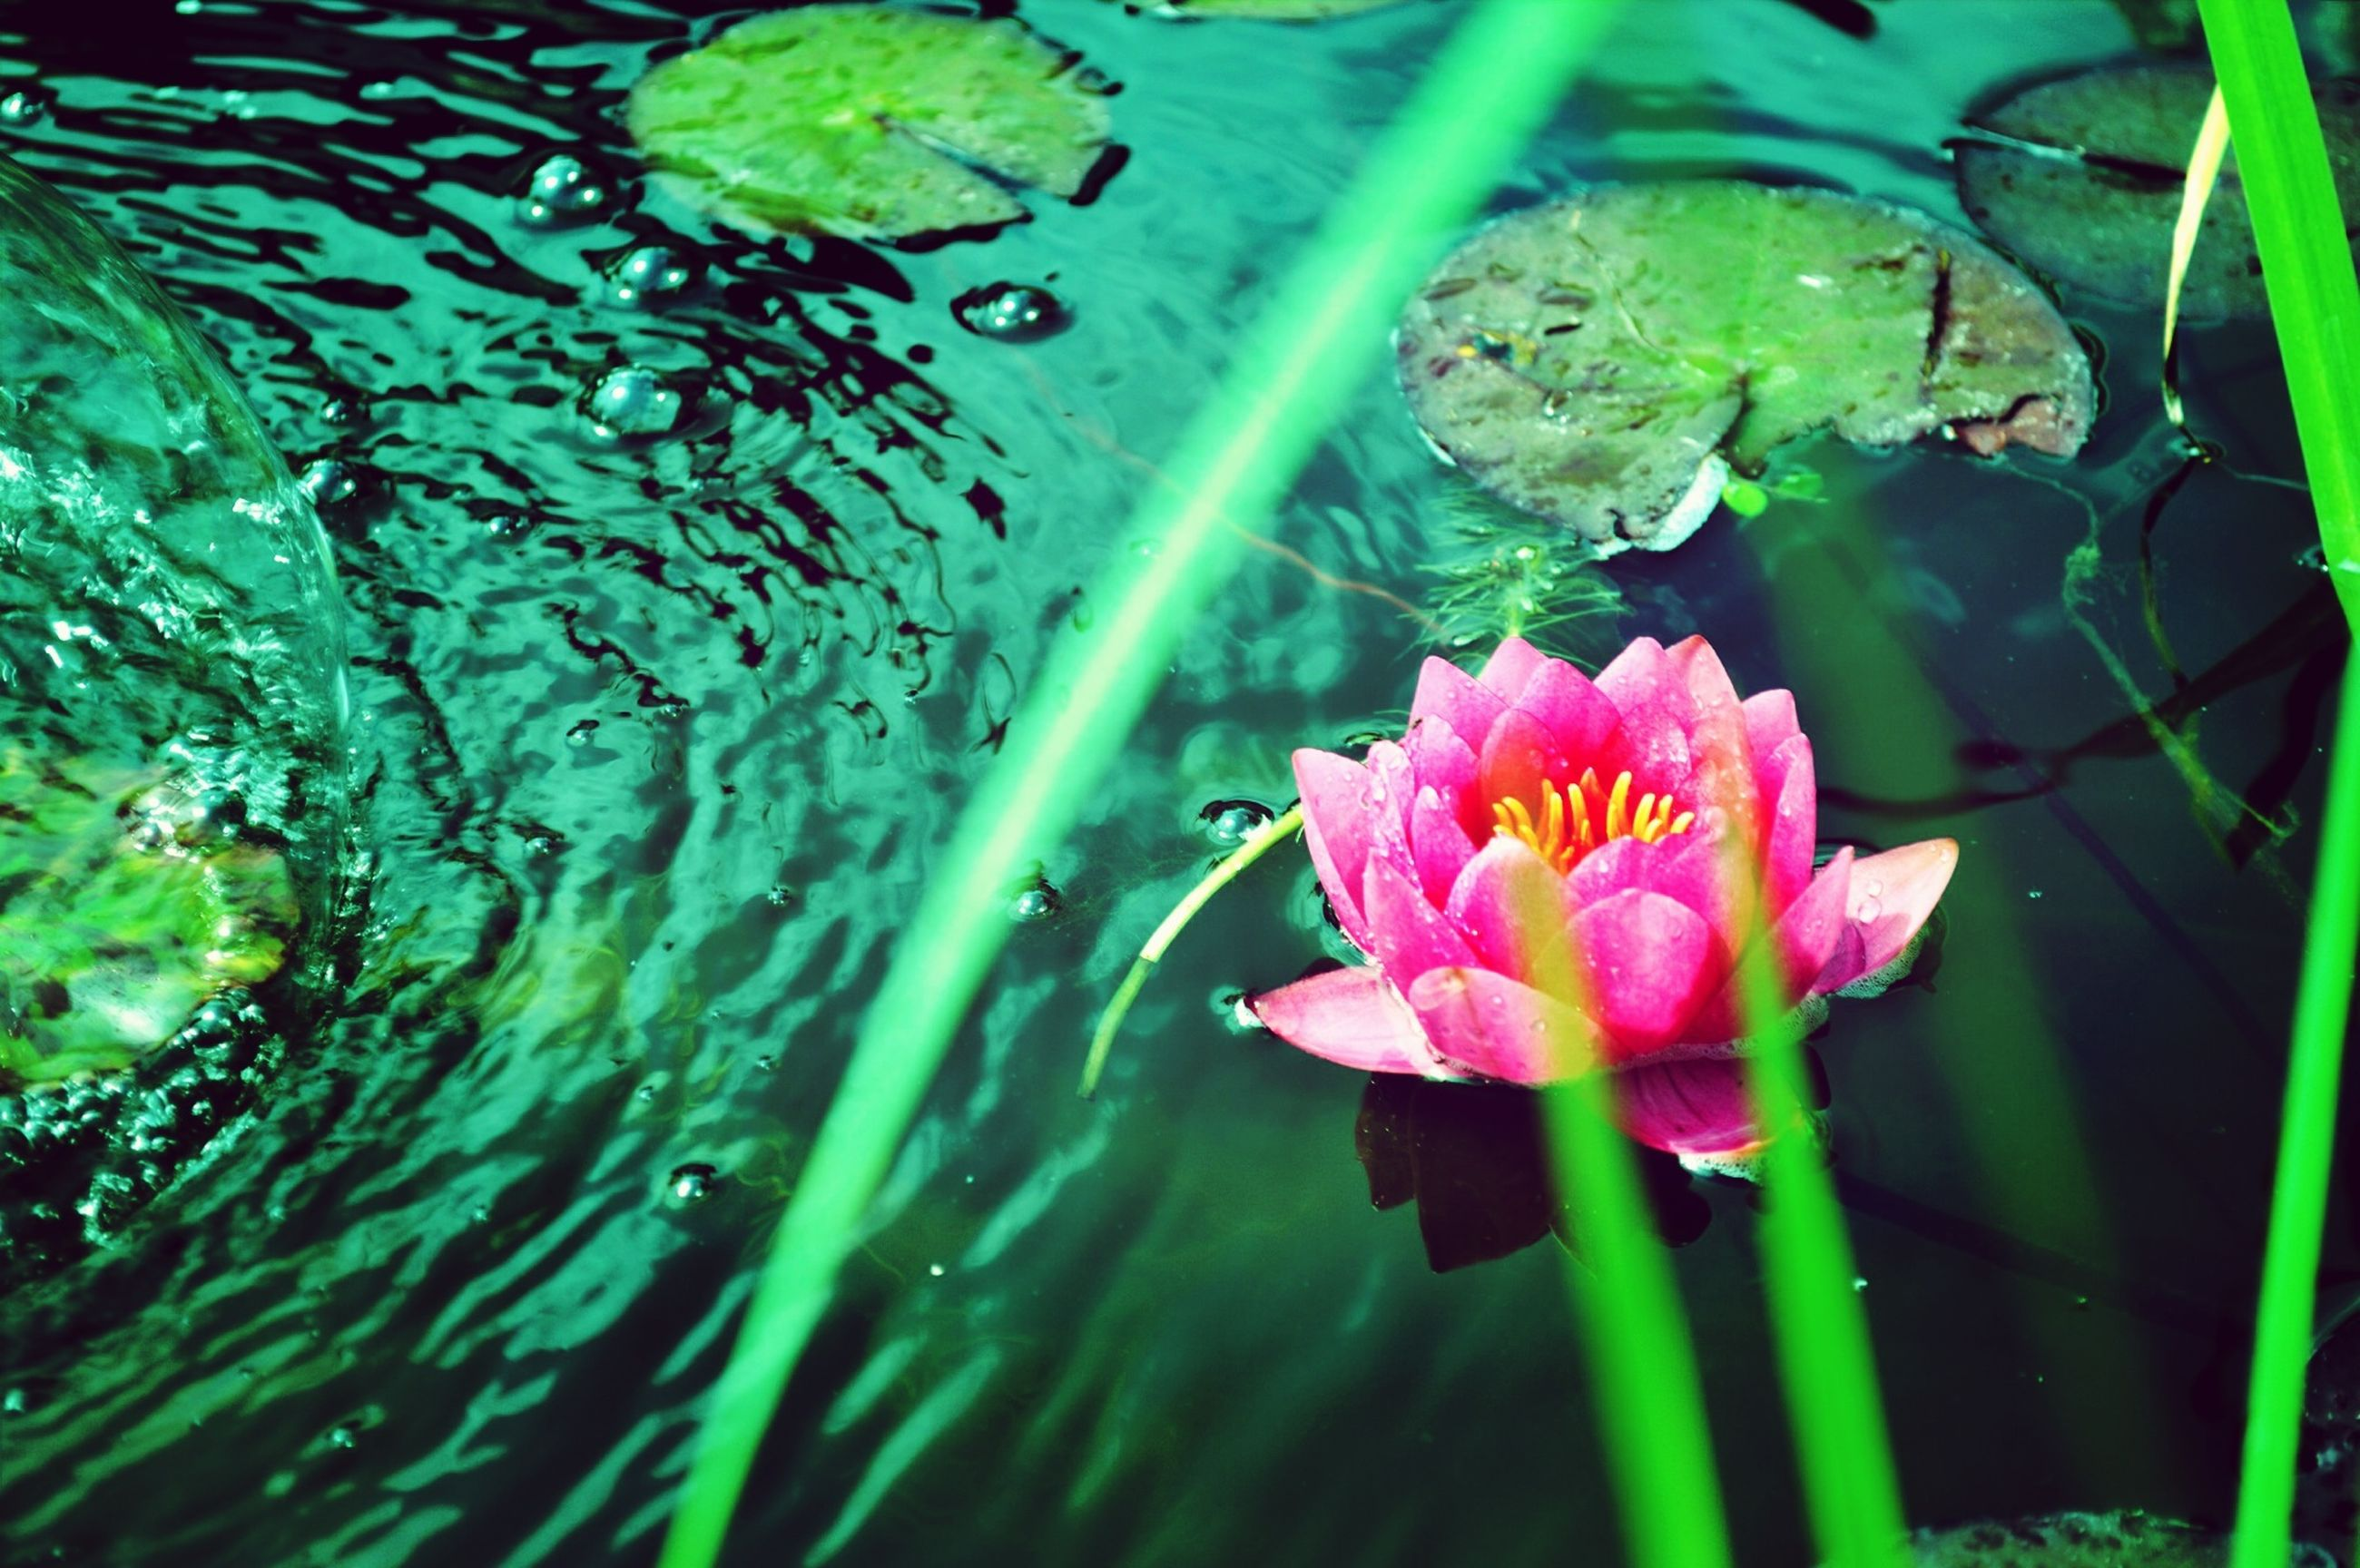 flower, freshness, fragility, petal, growth, water, leaf, beauty in nature, plant, flower head, pink color, nature, pond, blooming, green color, close-up, water lily, high angle view, in bloom, stem